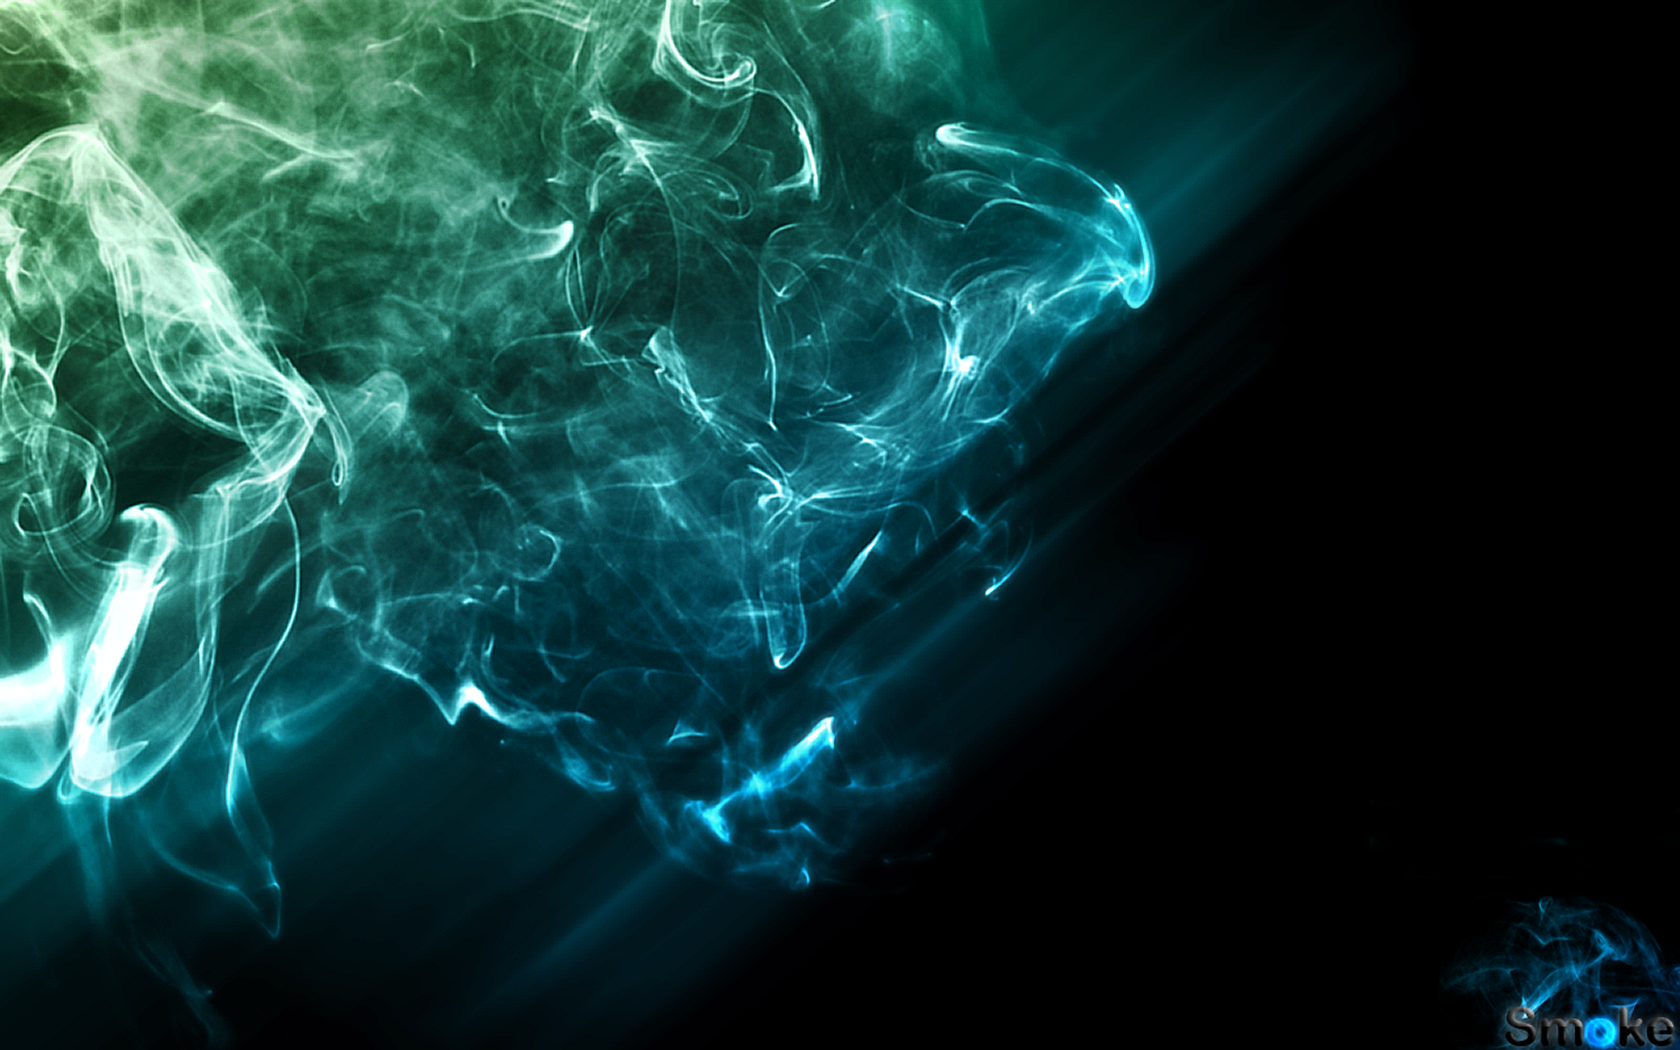 Smoke Wallpaper This Wallpapers 1680x1050